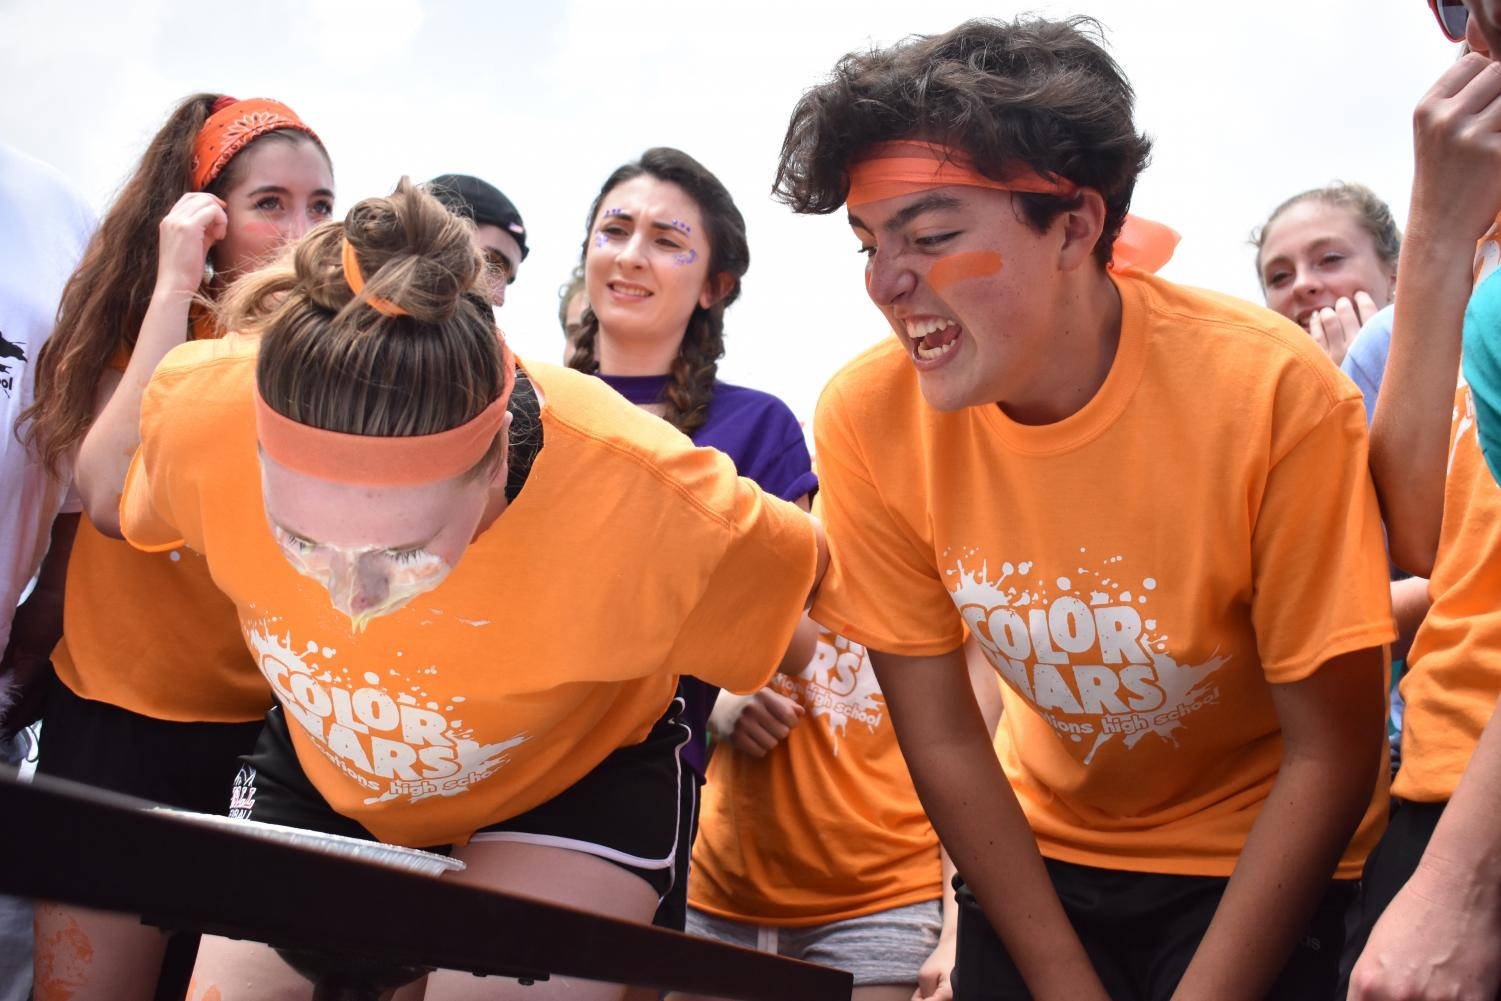 Junior+Liam+Marshall+of+Sea+Girt+cheers+on+Orange+Team+captain+and+senior+Megan+Stanislowski+of+Wall+as+she+represents+her+team+during+the+pie-eating+competition.+